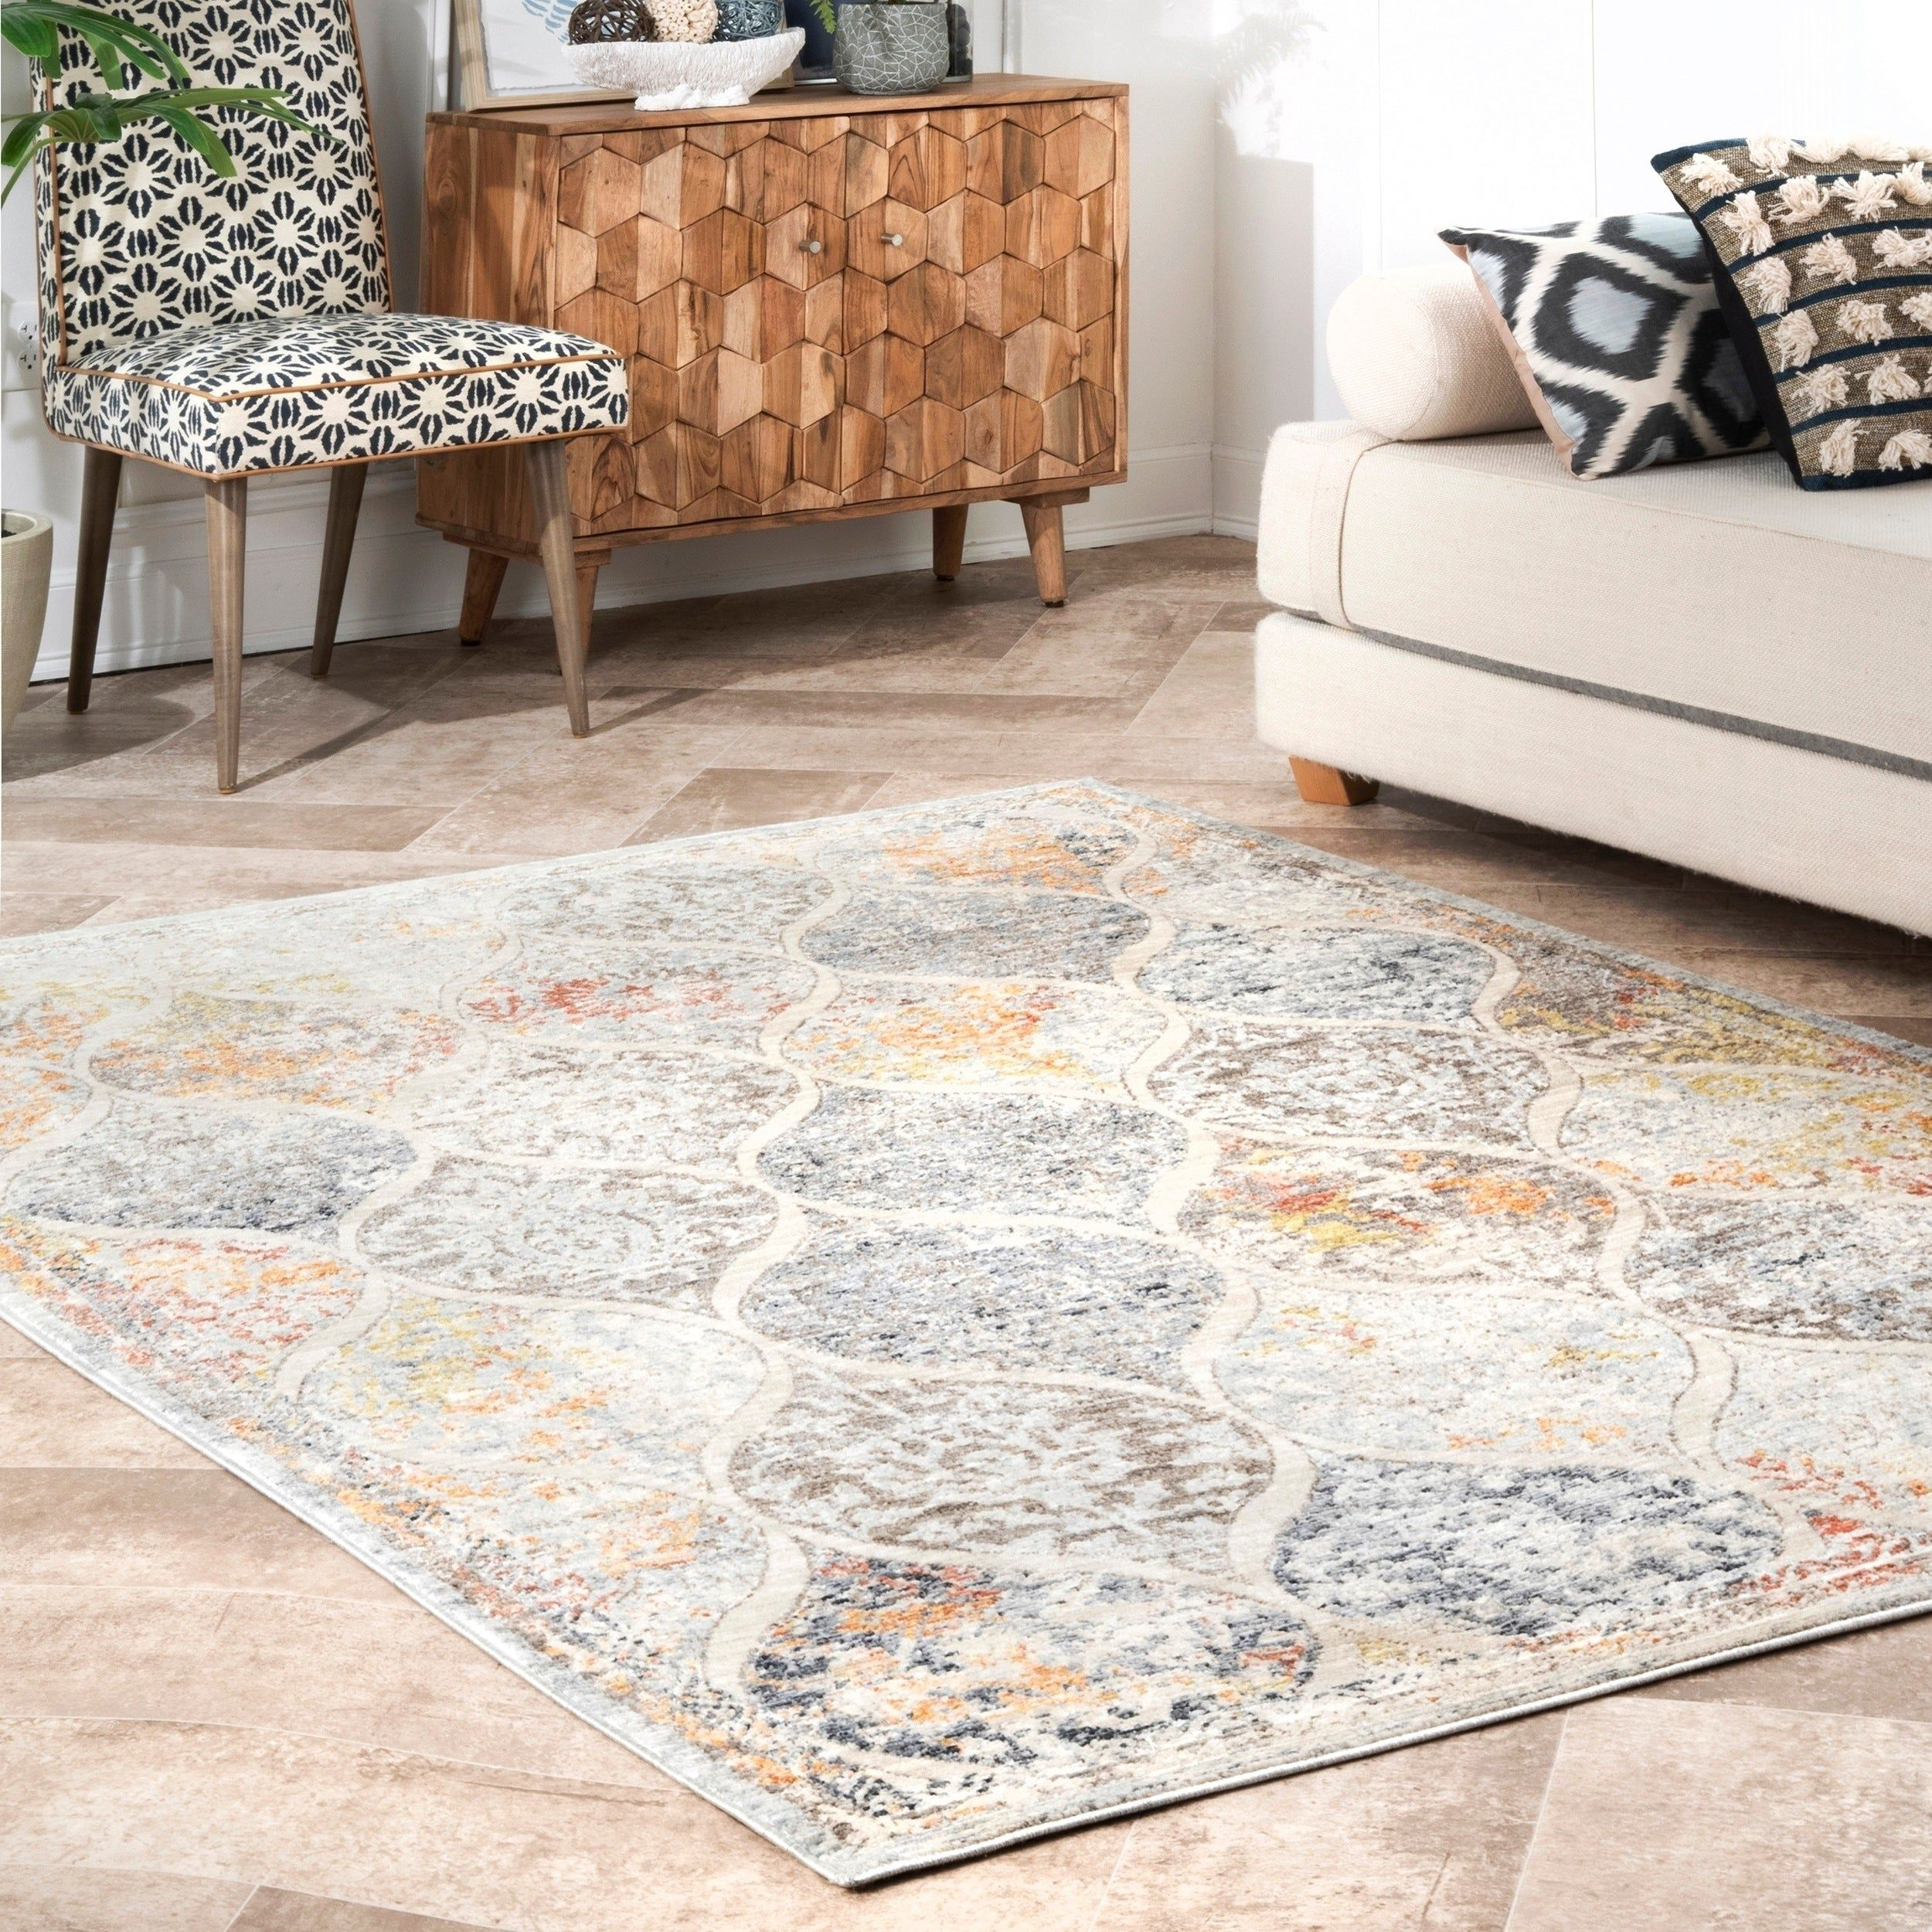 Nuloom Transitional Geometric Trellis Miar Area Rug 8 X 10 Multicolor Area Rugs Trending Decor Colorful Rugs